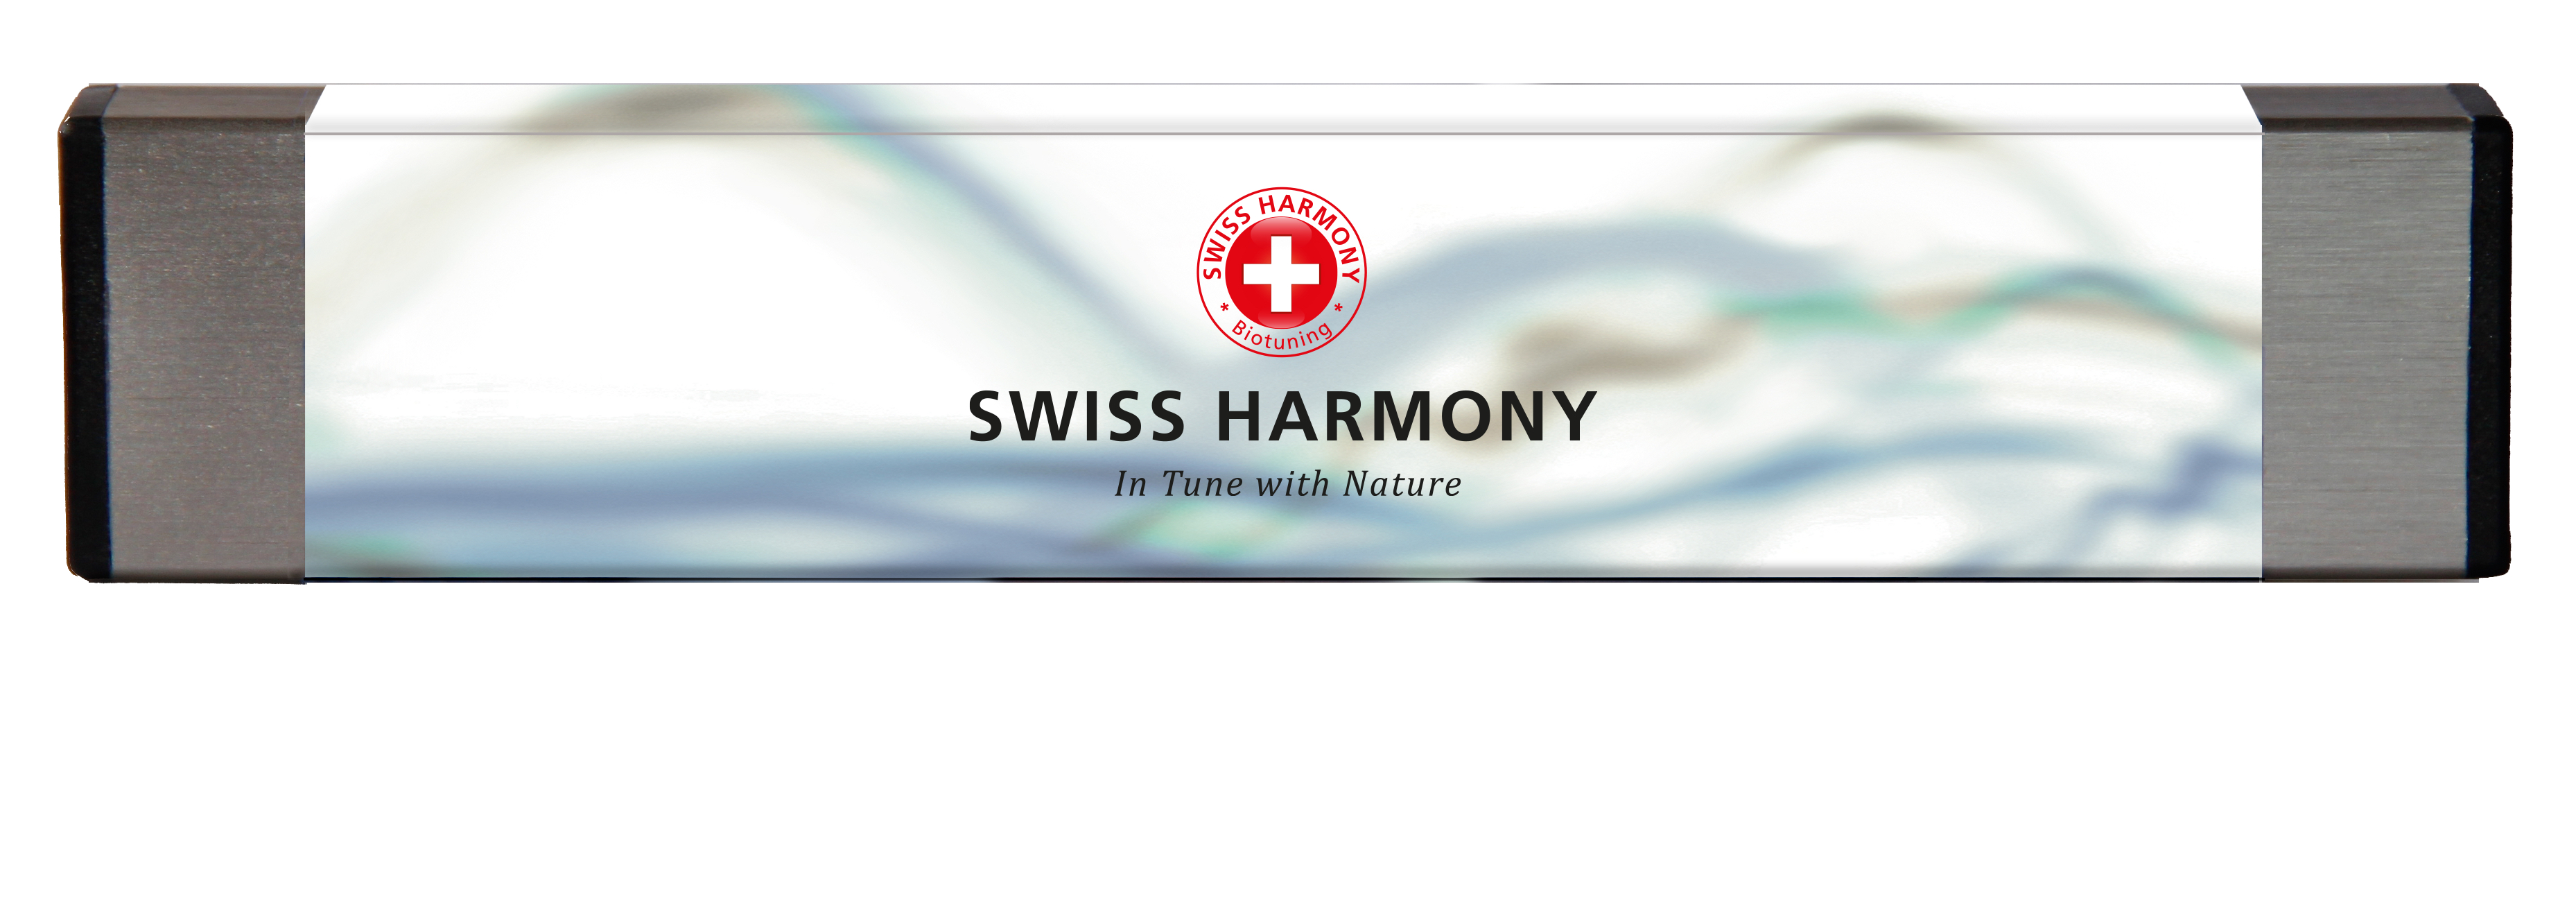 Swiss Harmony's BioTuner Climate ensures that the electric field inside a home oscillates harmonically, thus remaining ineffective and harmless.